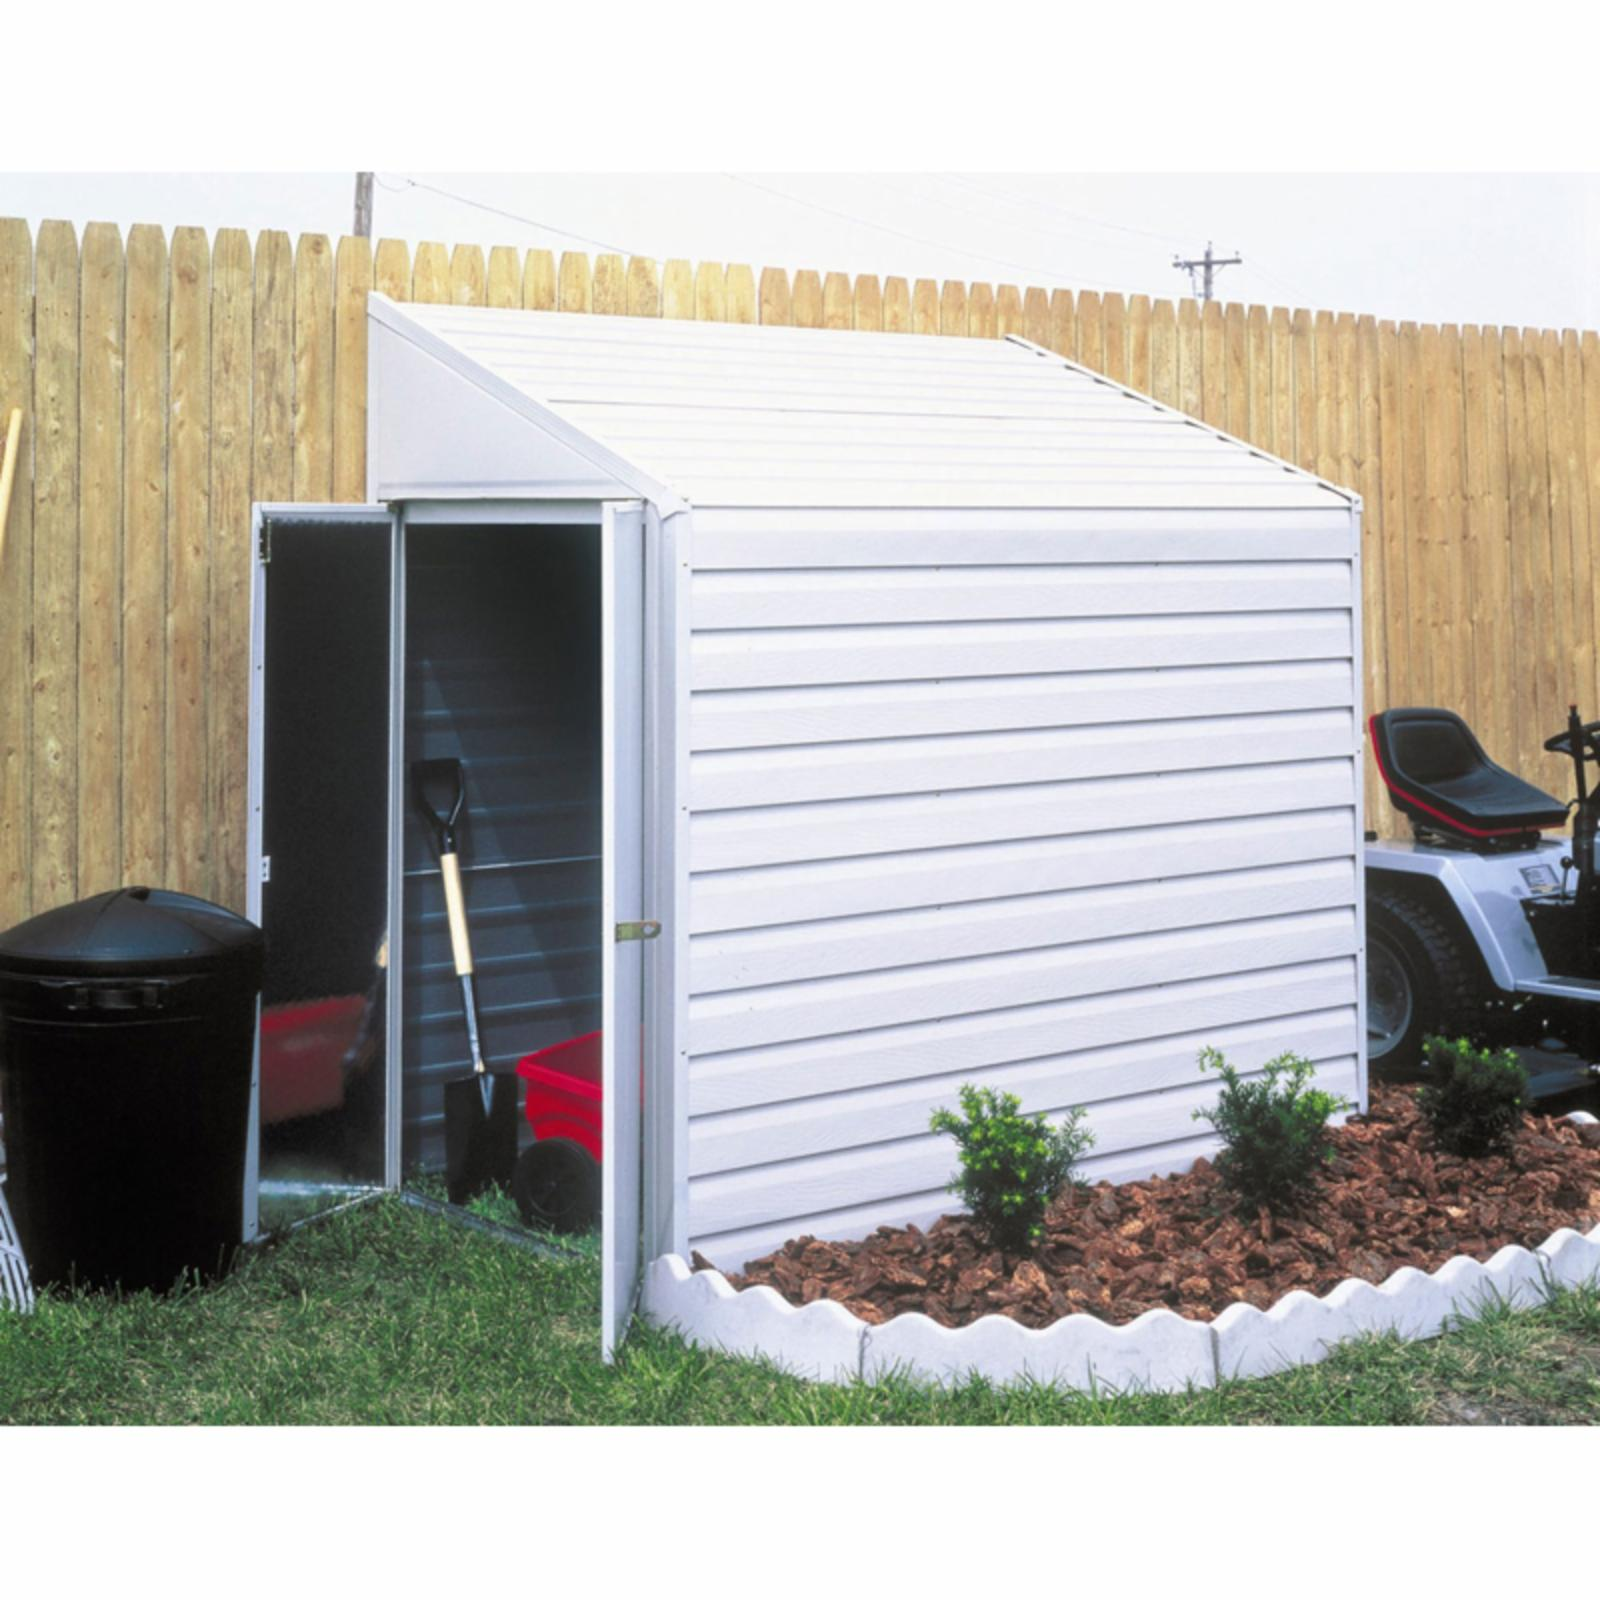 Arrow Shed Yardsaver 4 x 10 ft. Shed - YS410